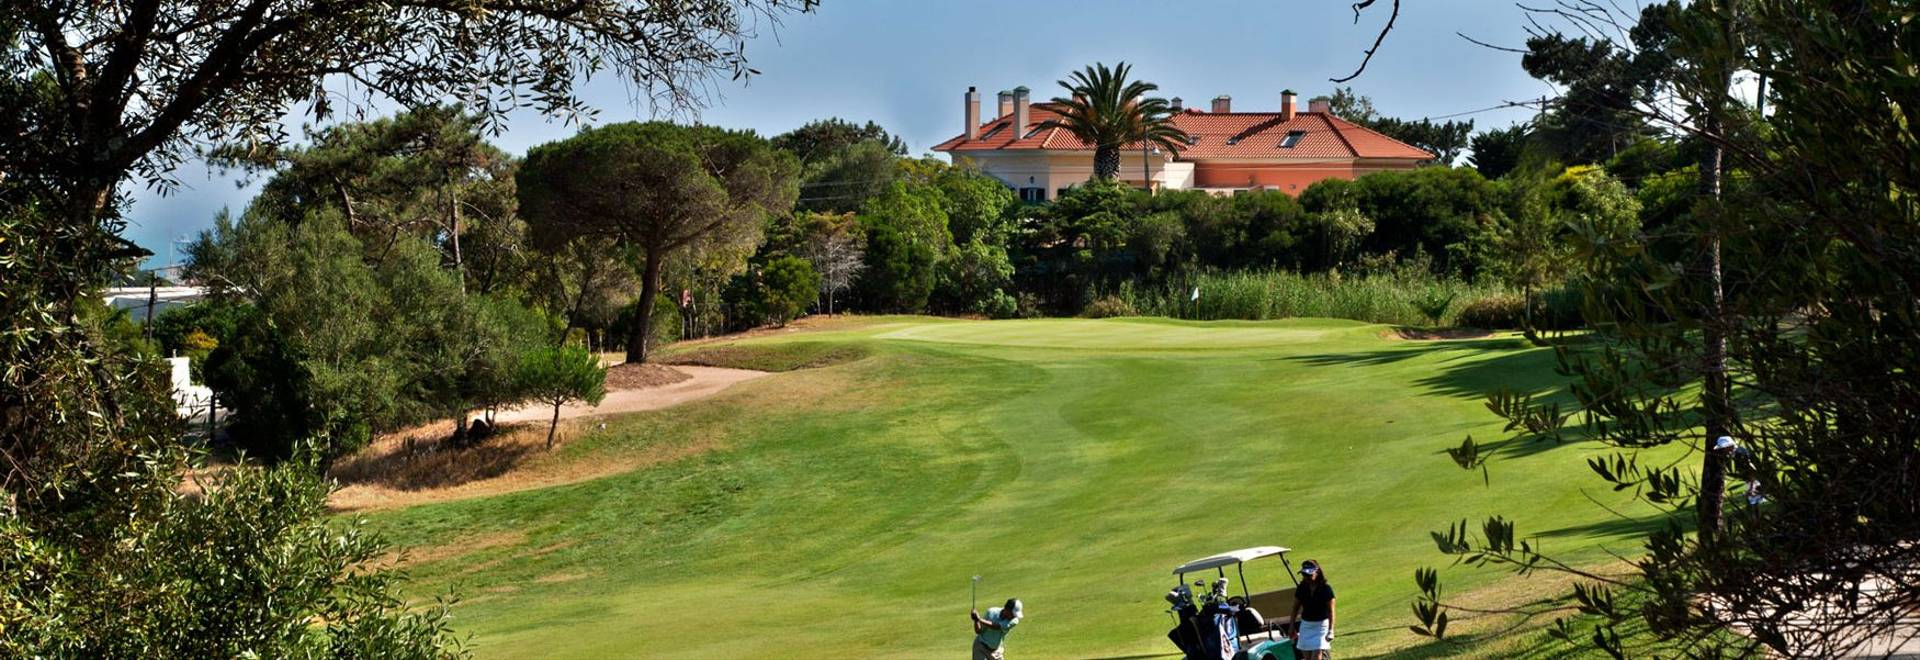 Palacio-Estoril-golf-course.jpg